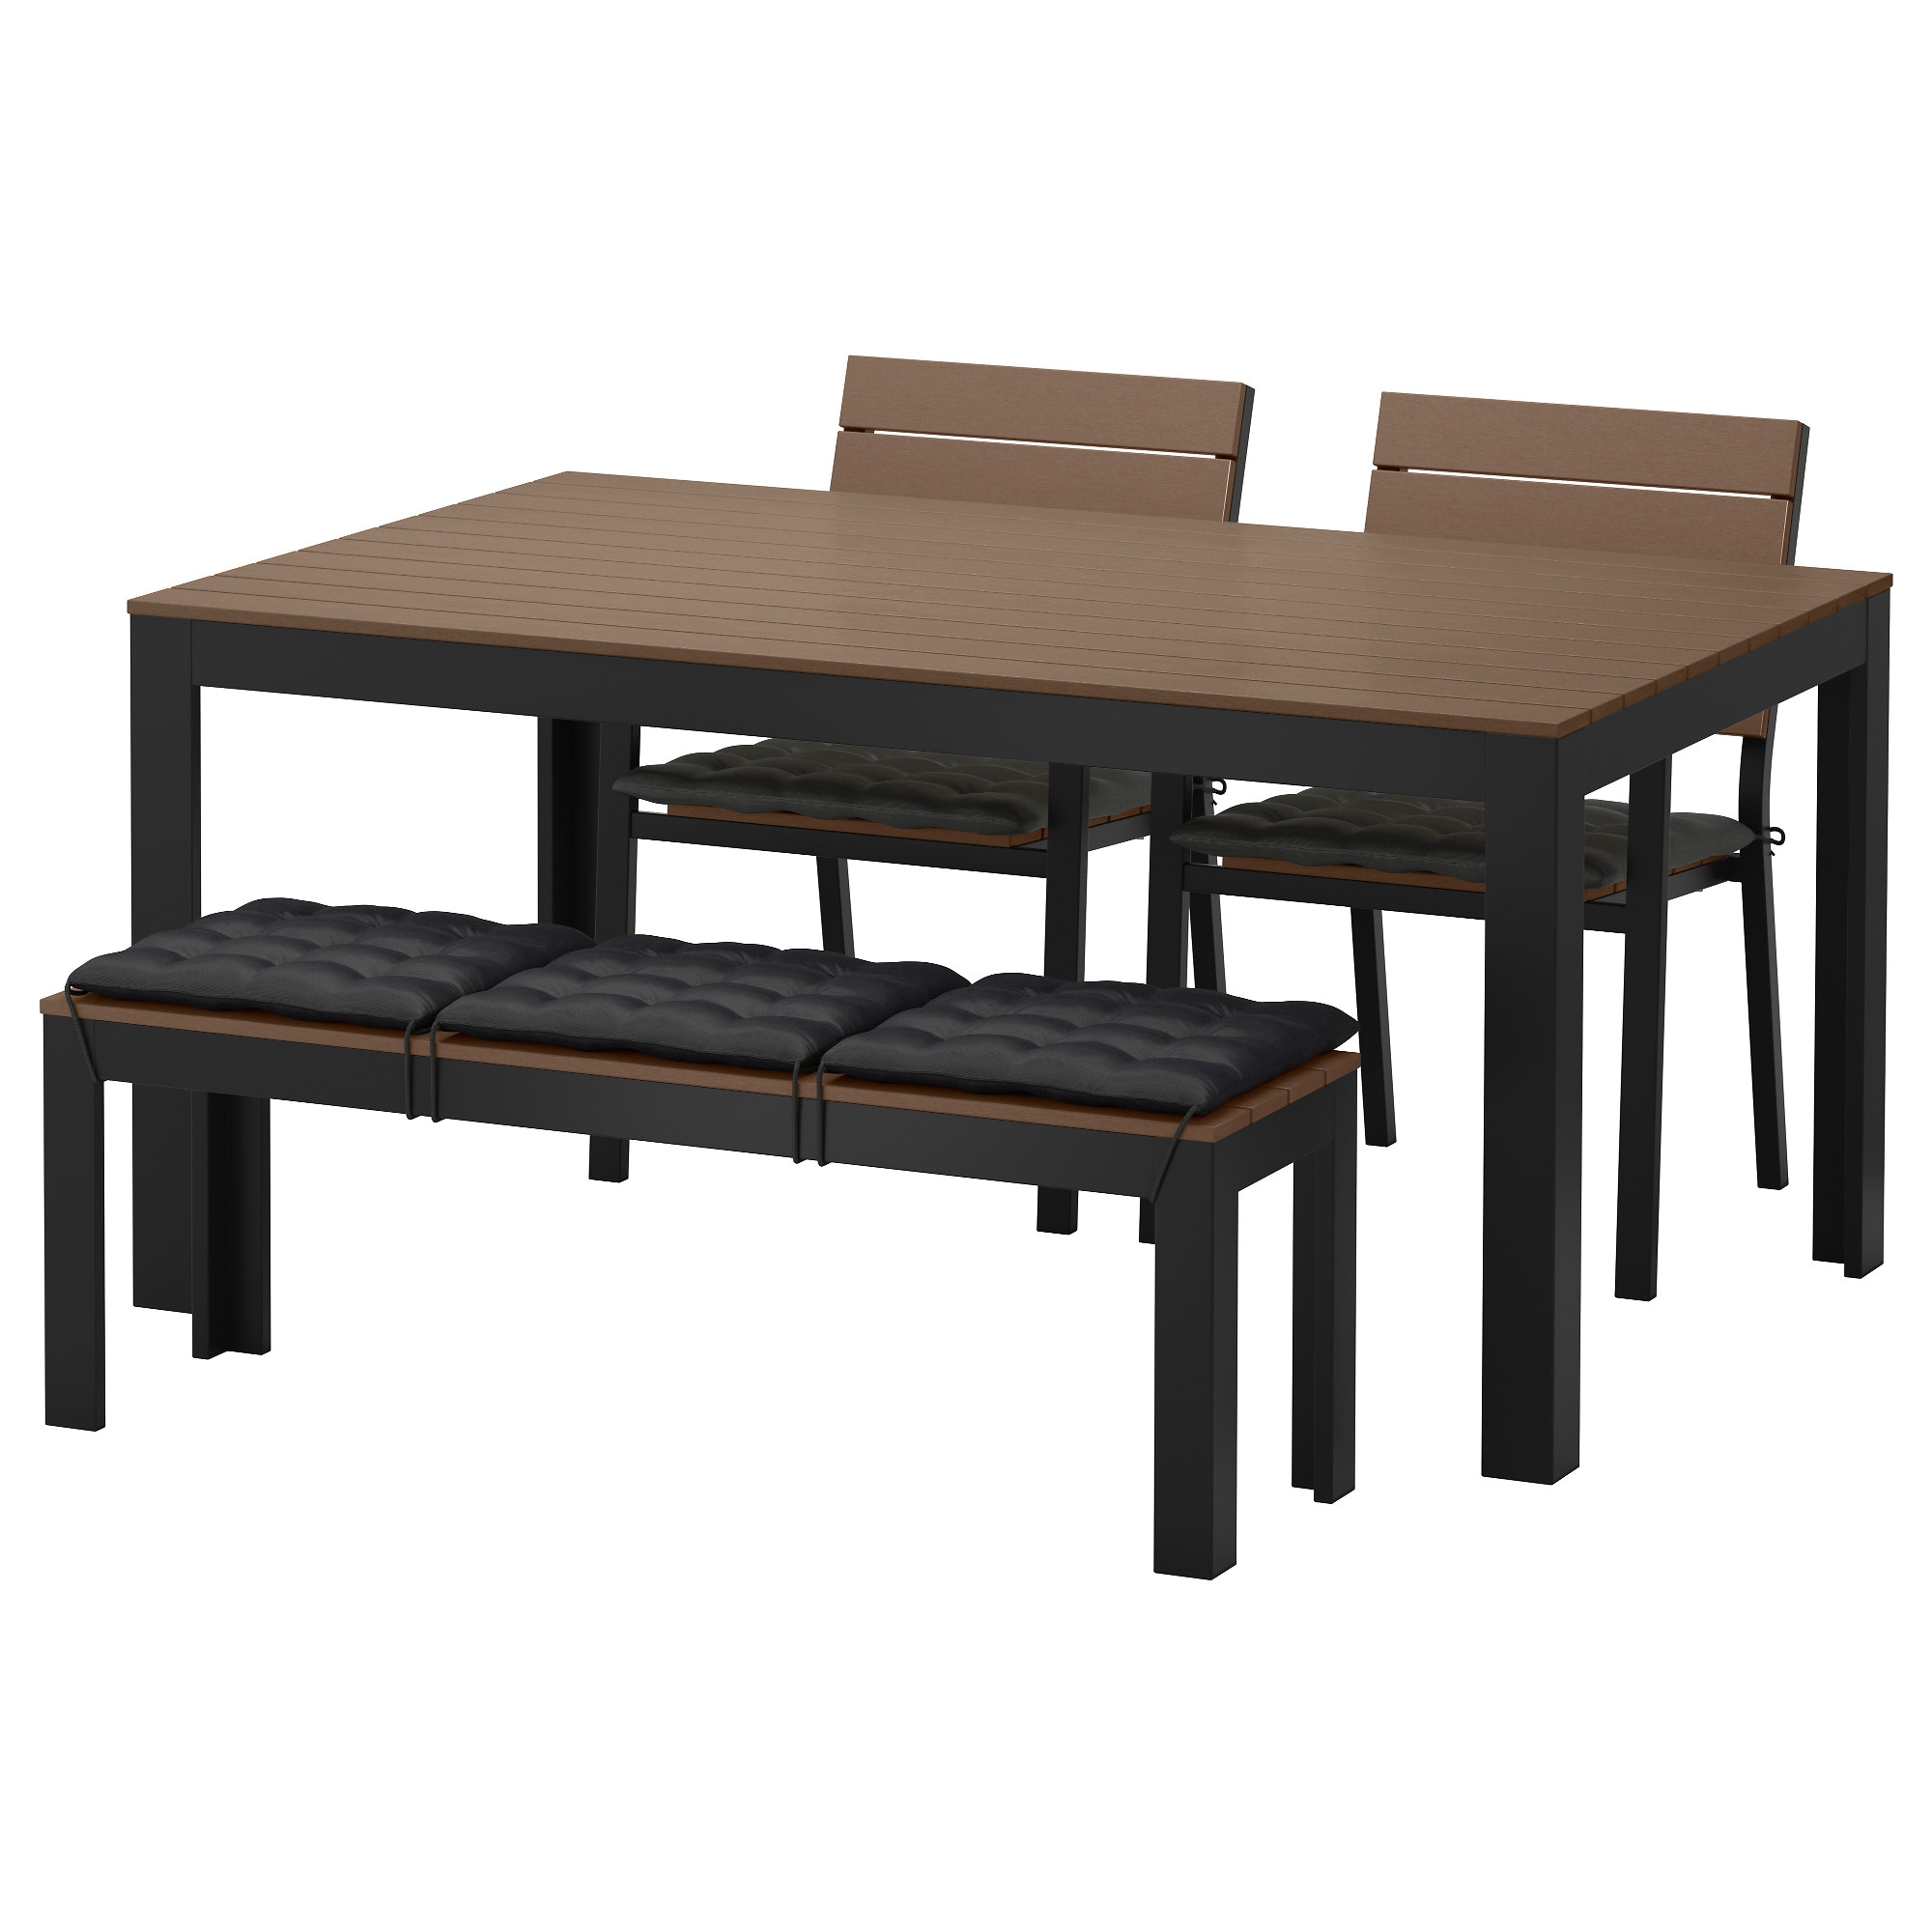 FALSTER Table 2 chairs and bench outdoor Falster black brown